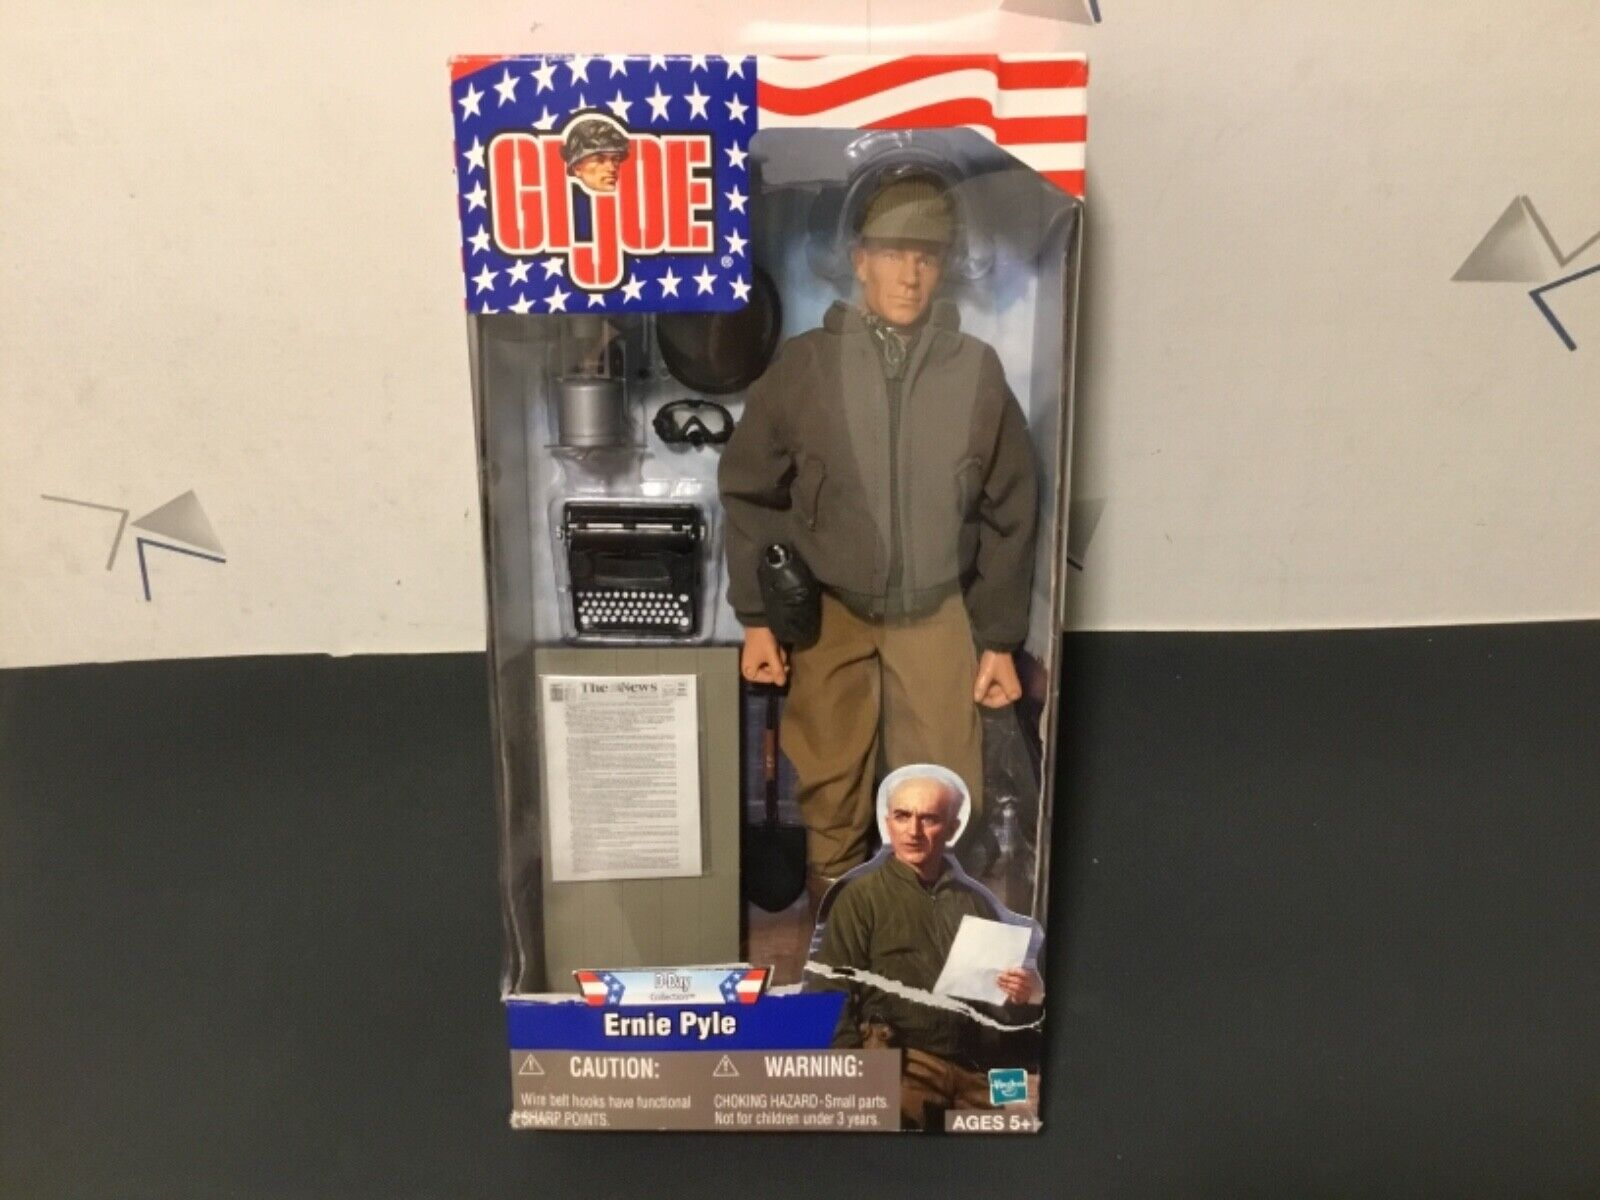 G.I. Joe Ernie Pyle Wirkung Figure UNOPENED CONDITION